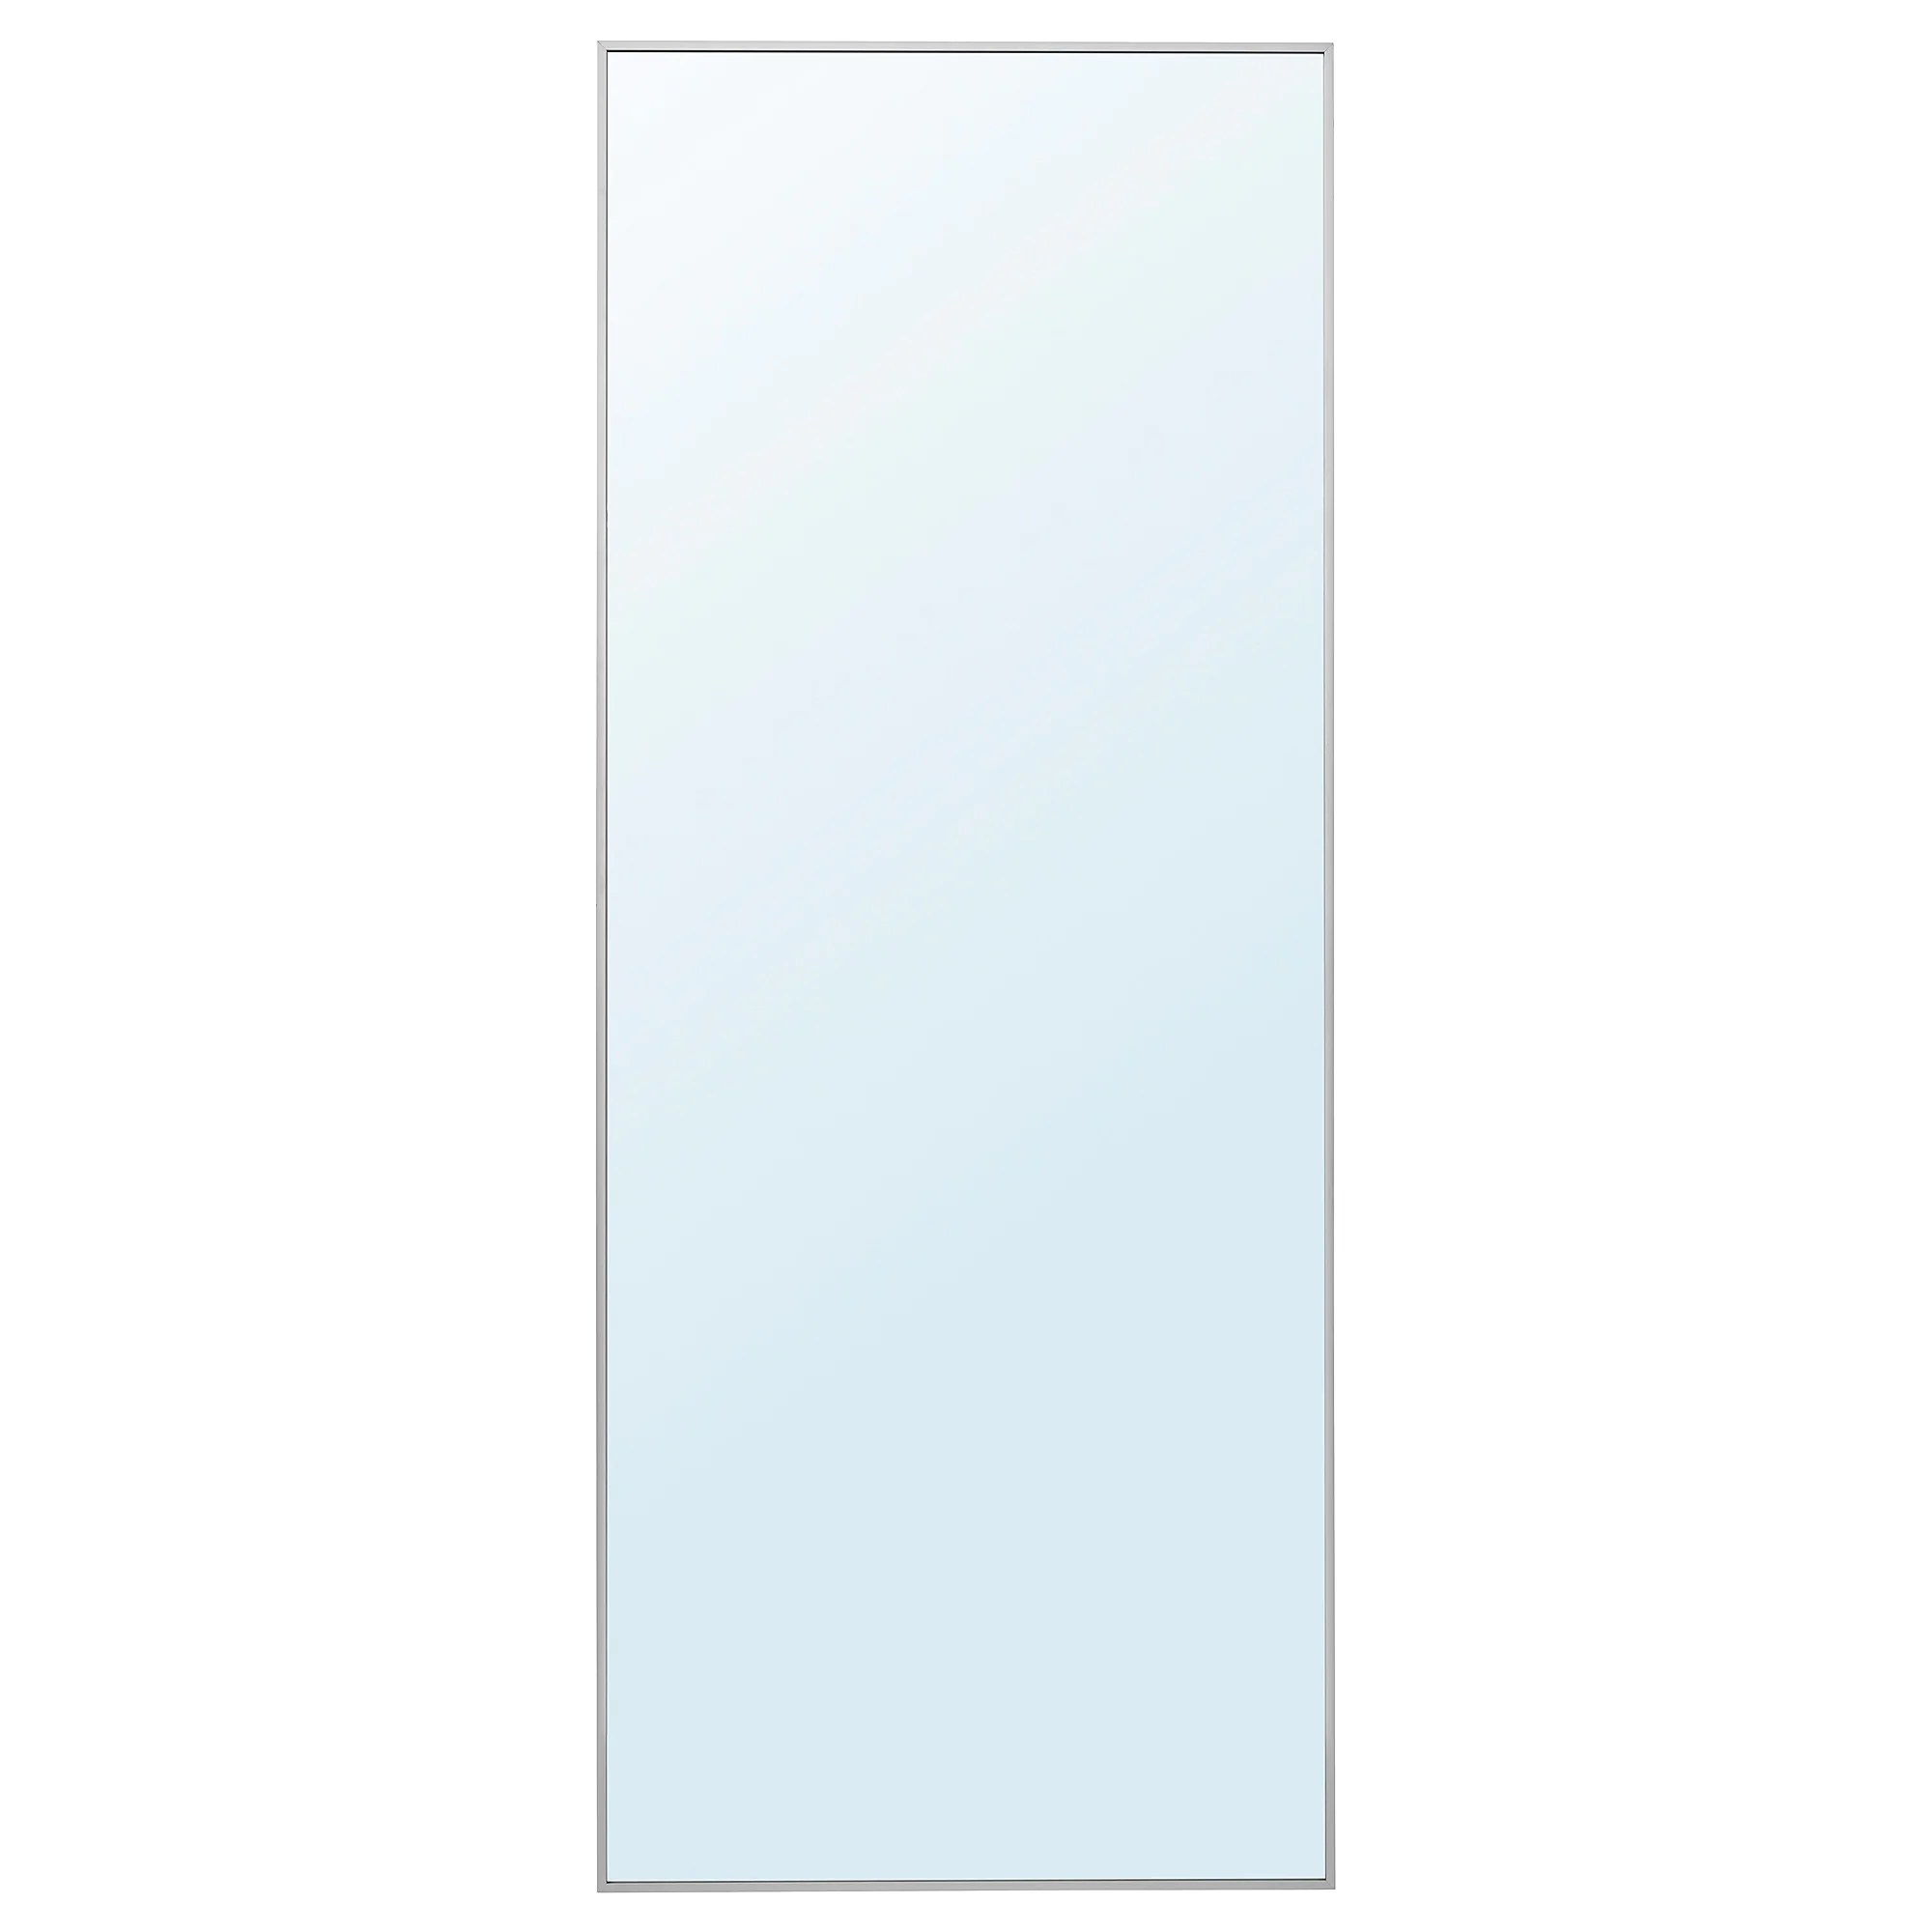 Ikea Wardrobe Leaning To One Side Mirror Hovet Aluminum